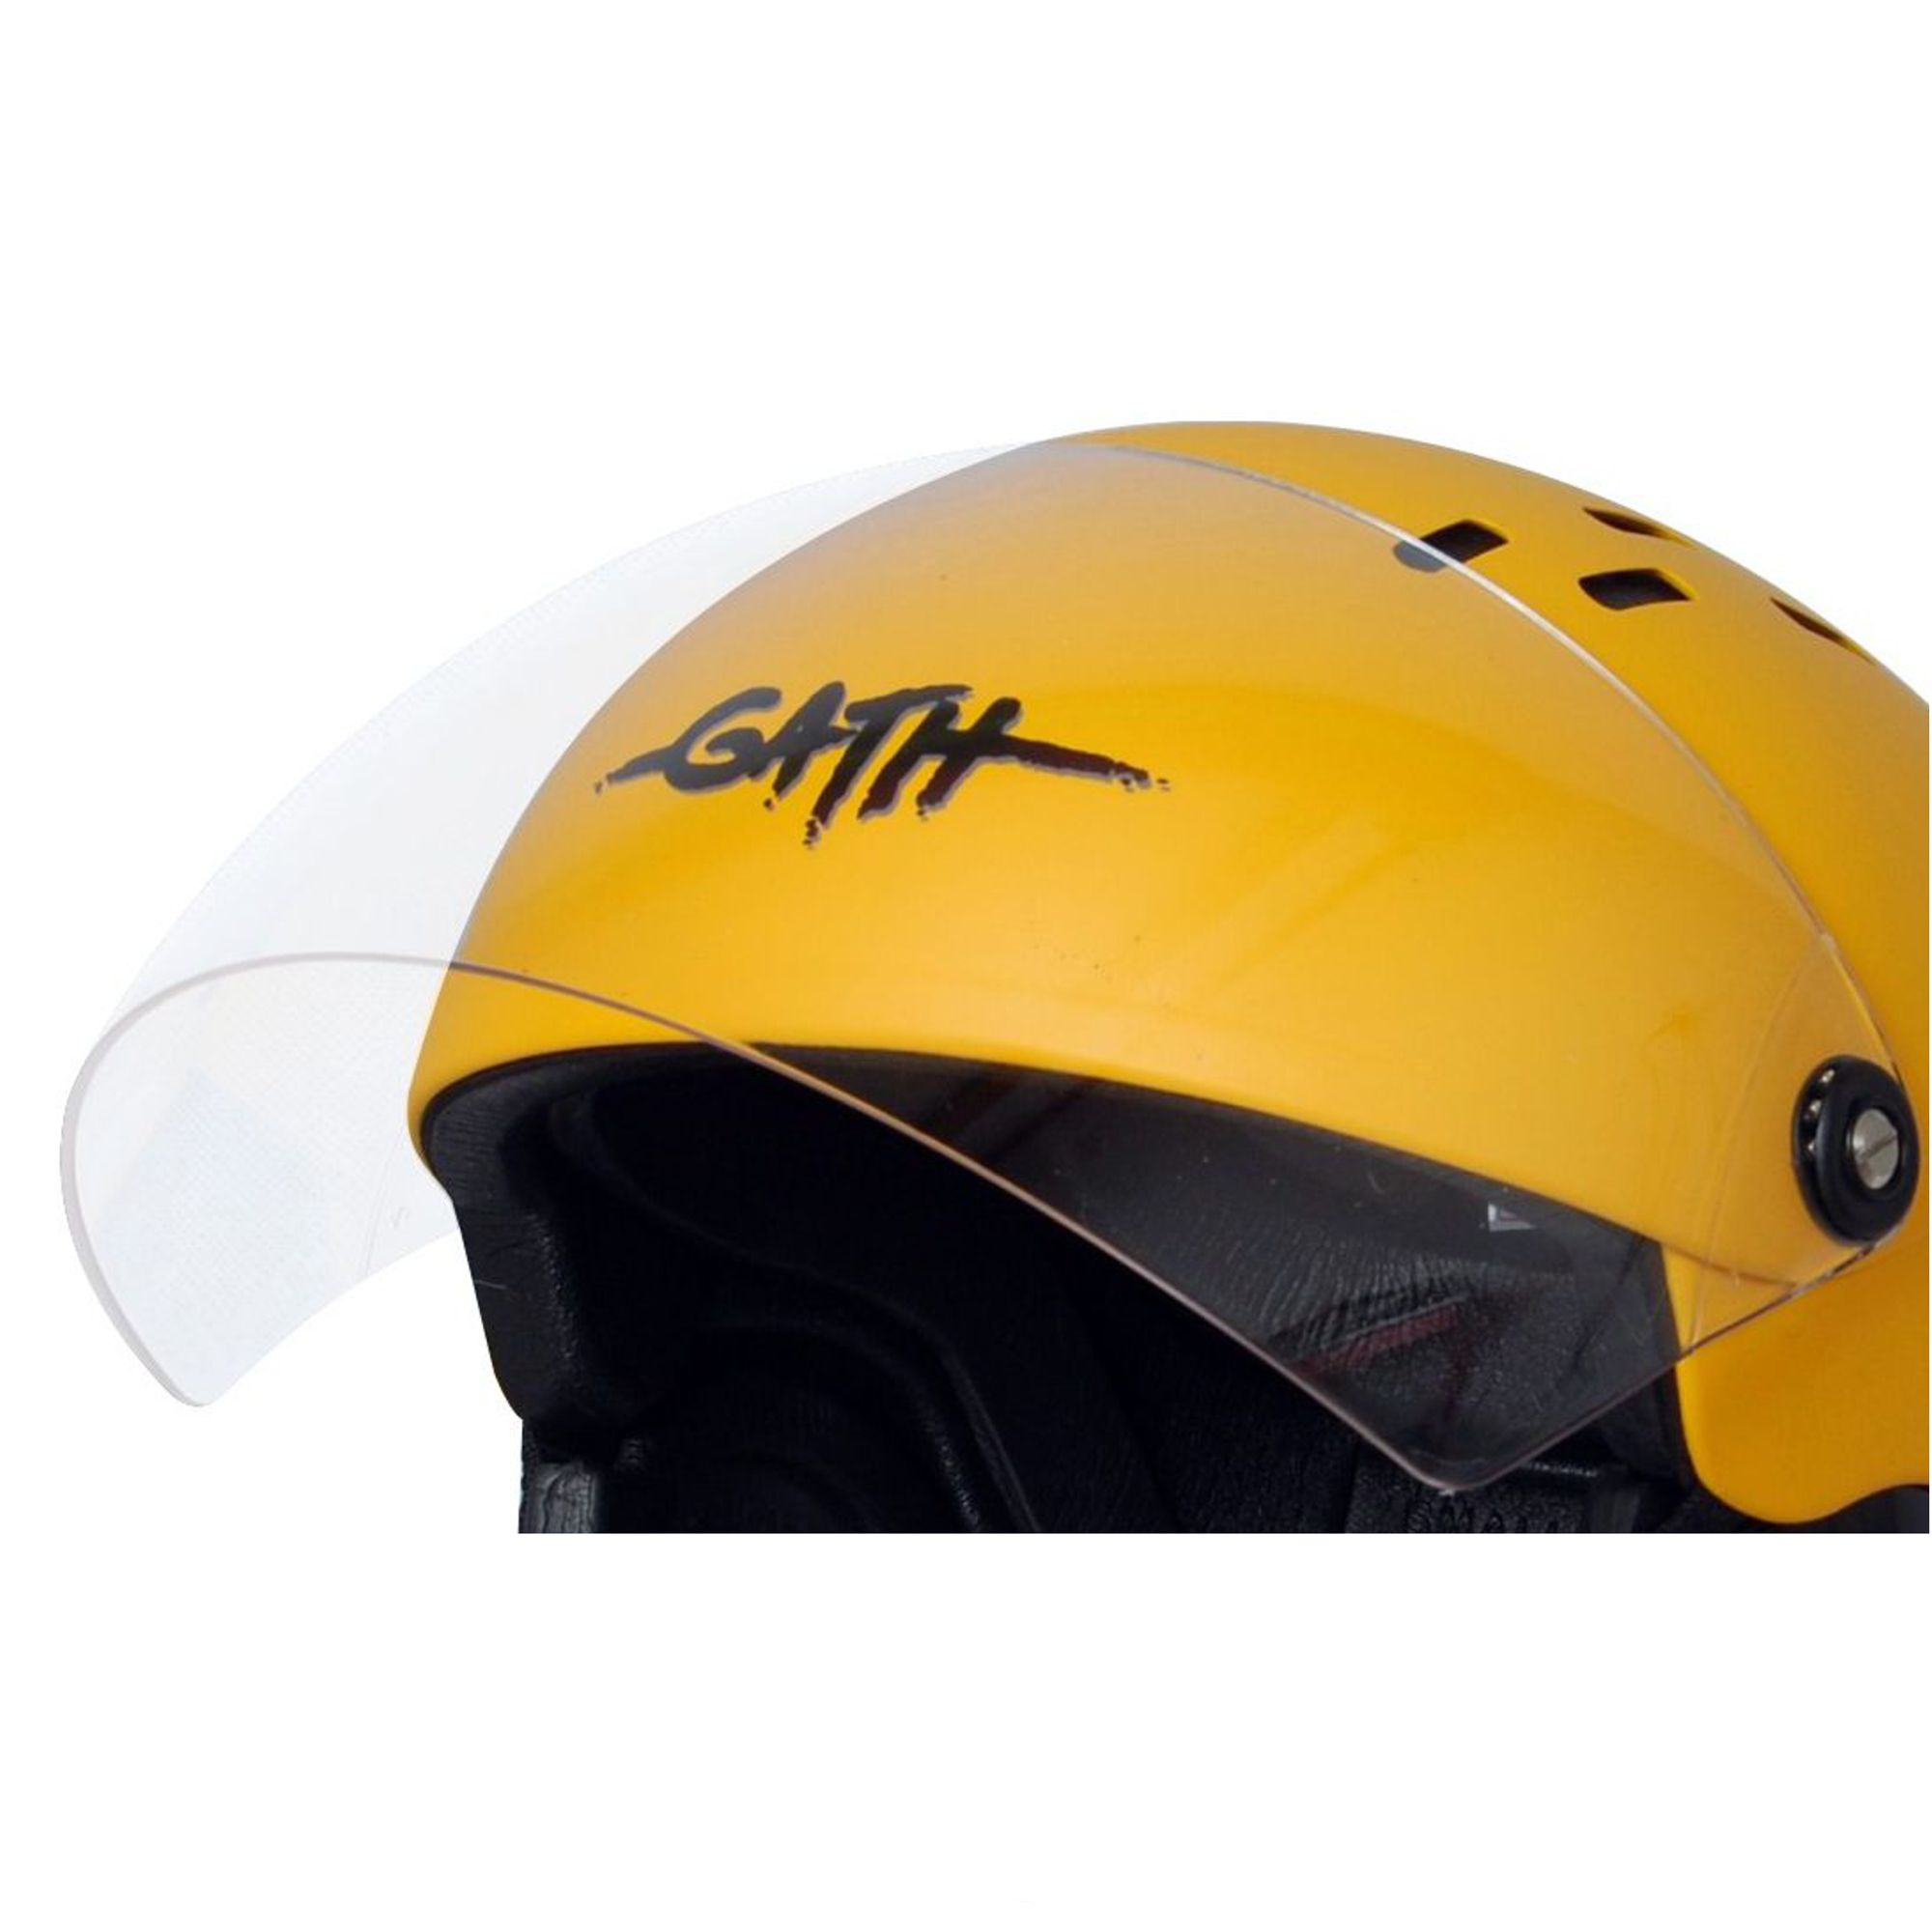 GATH Full Face Visor Size 2 Vollvisier Klar